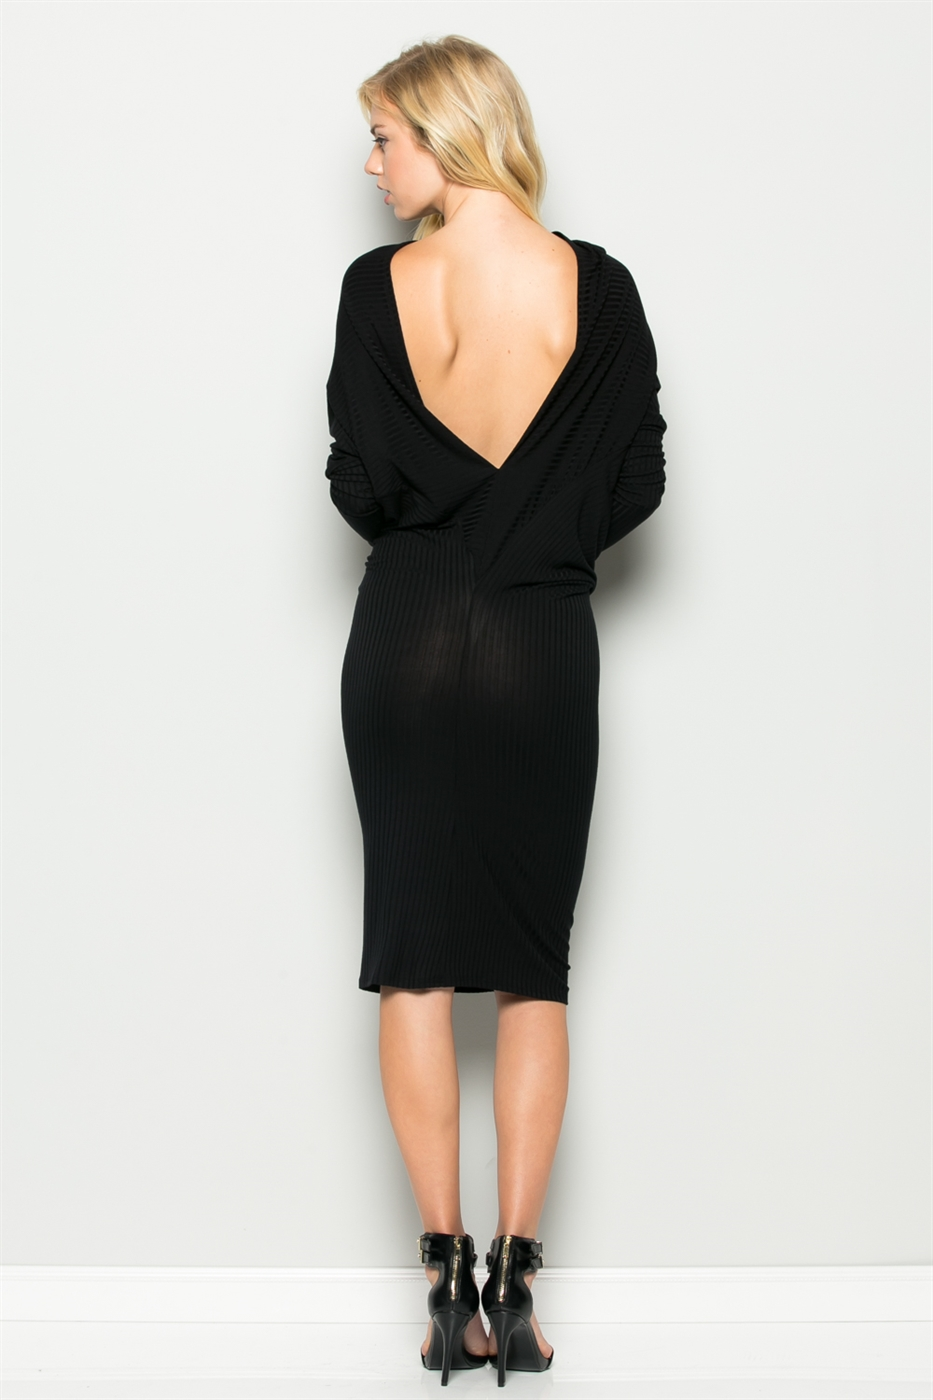 DRESS WITH V-NECK PLUNGE BACK - orangeshine.com